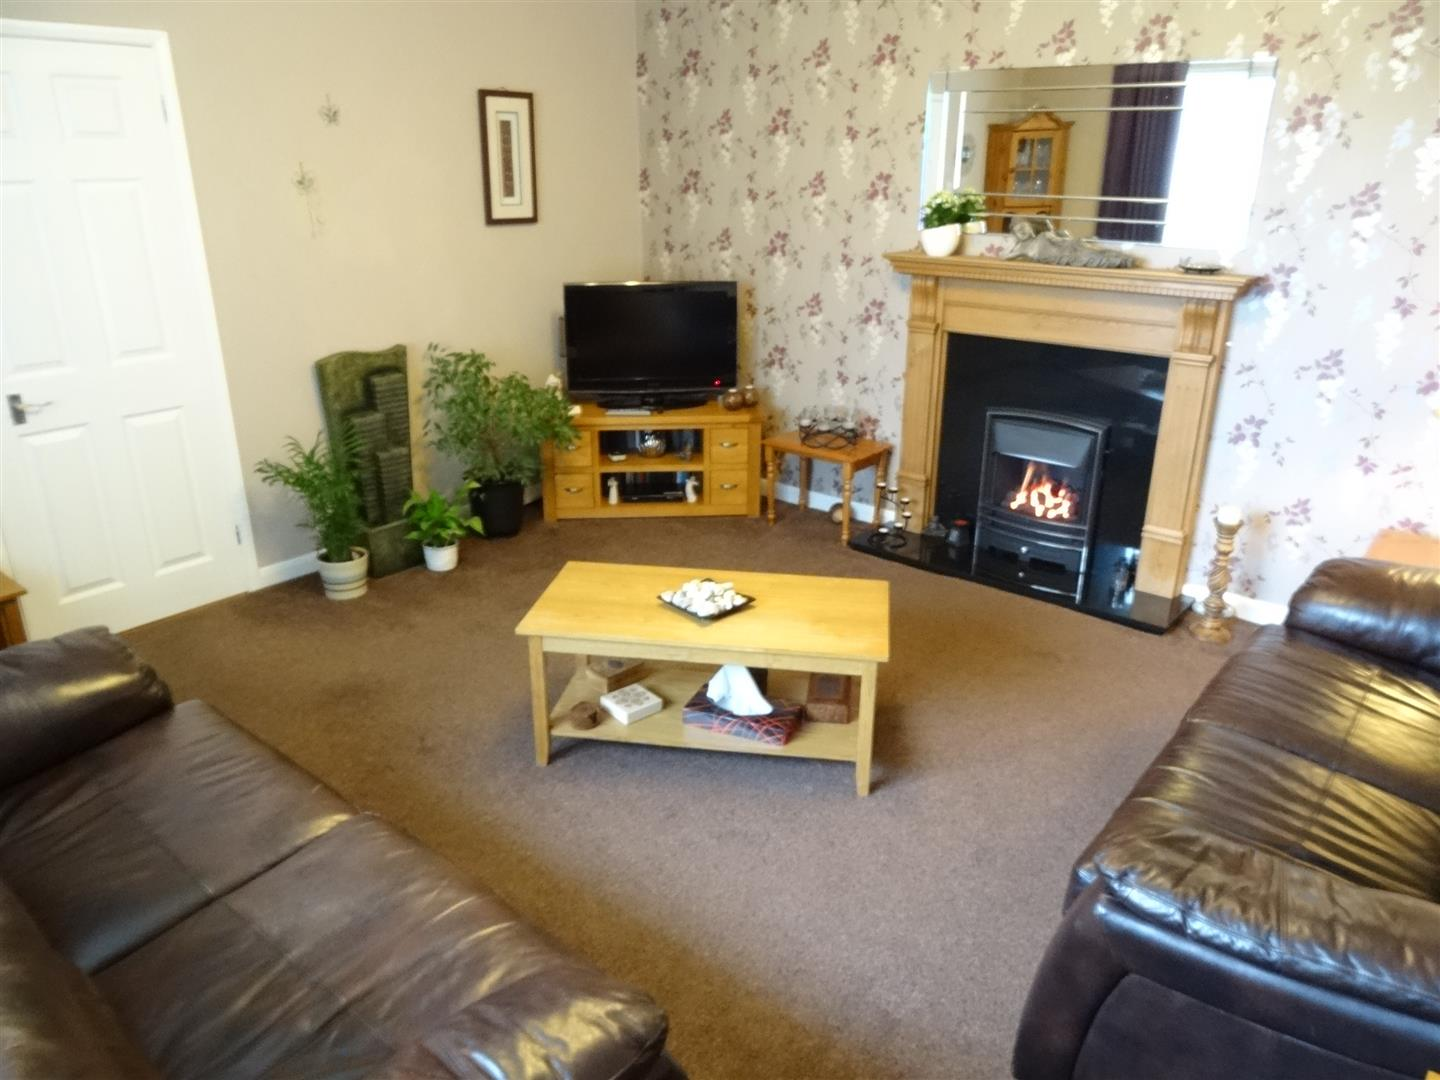 3 Bedrooms Bungalow - Detached For Sale 9 Grahams Croft Carlisle